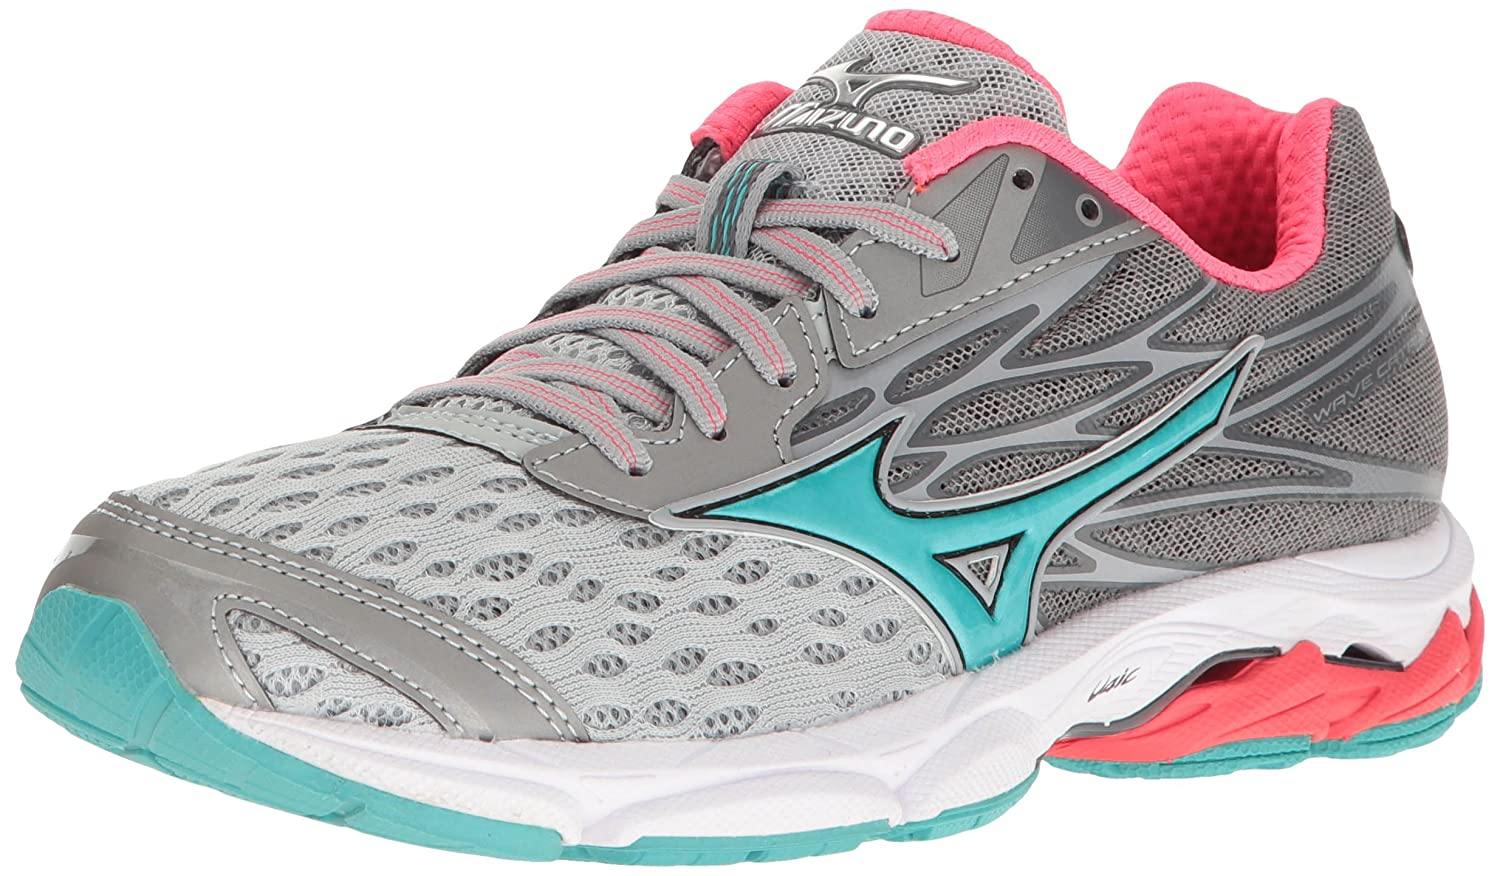 Mizuno Women's Wave Catalyst 2 Running Shoe B01H3EG2X4 6 B(M) US|Grey/Mint